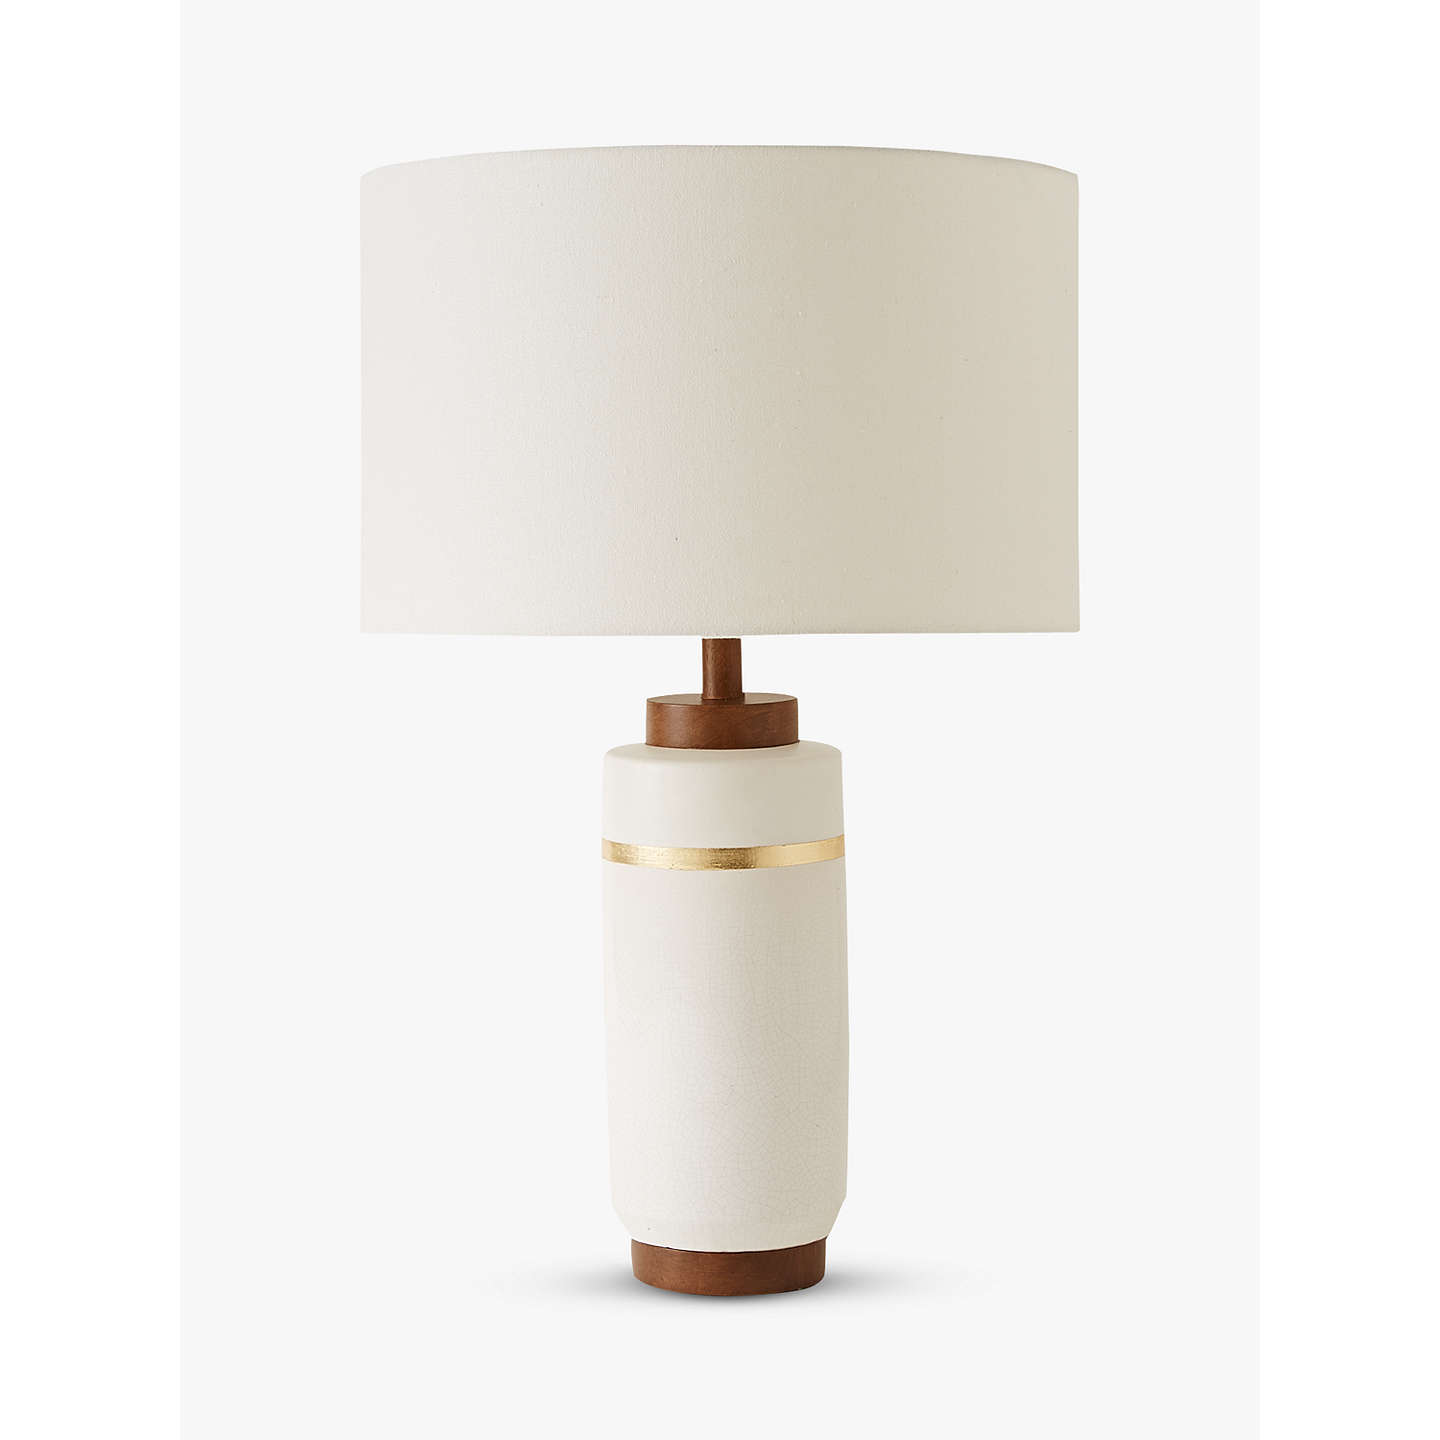 Roar rabbit for west elm crackle glaze table lamp large white at buyroar rabbit for west elm crackle glaze table lamp large white online at aloadofball Image collections